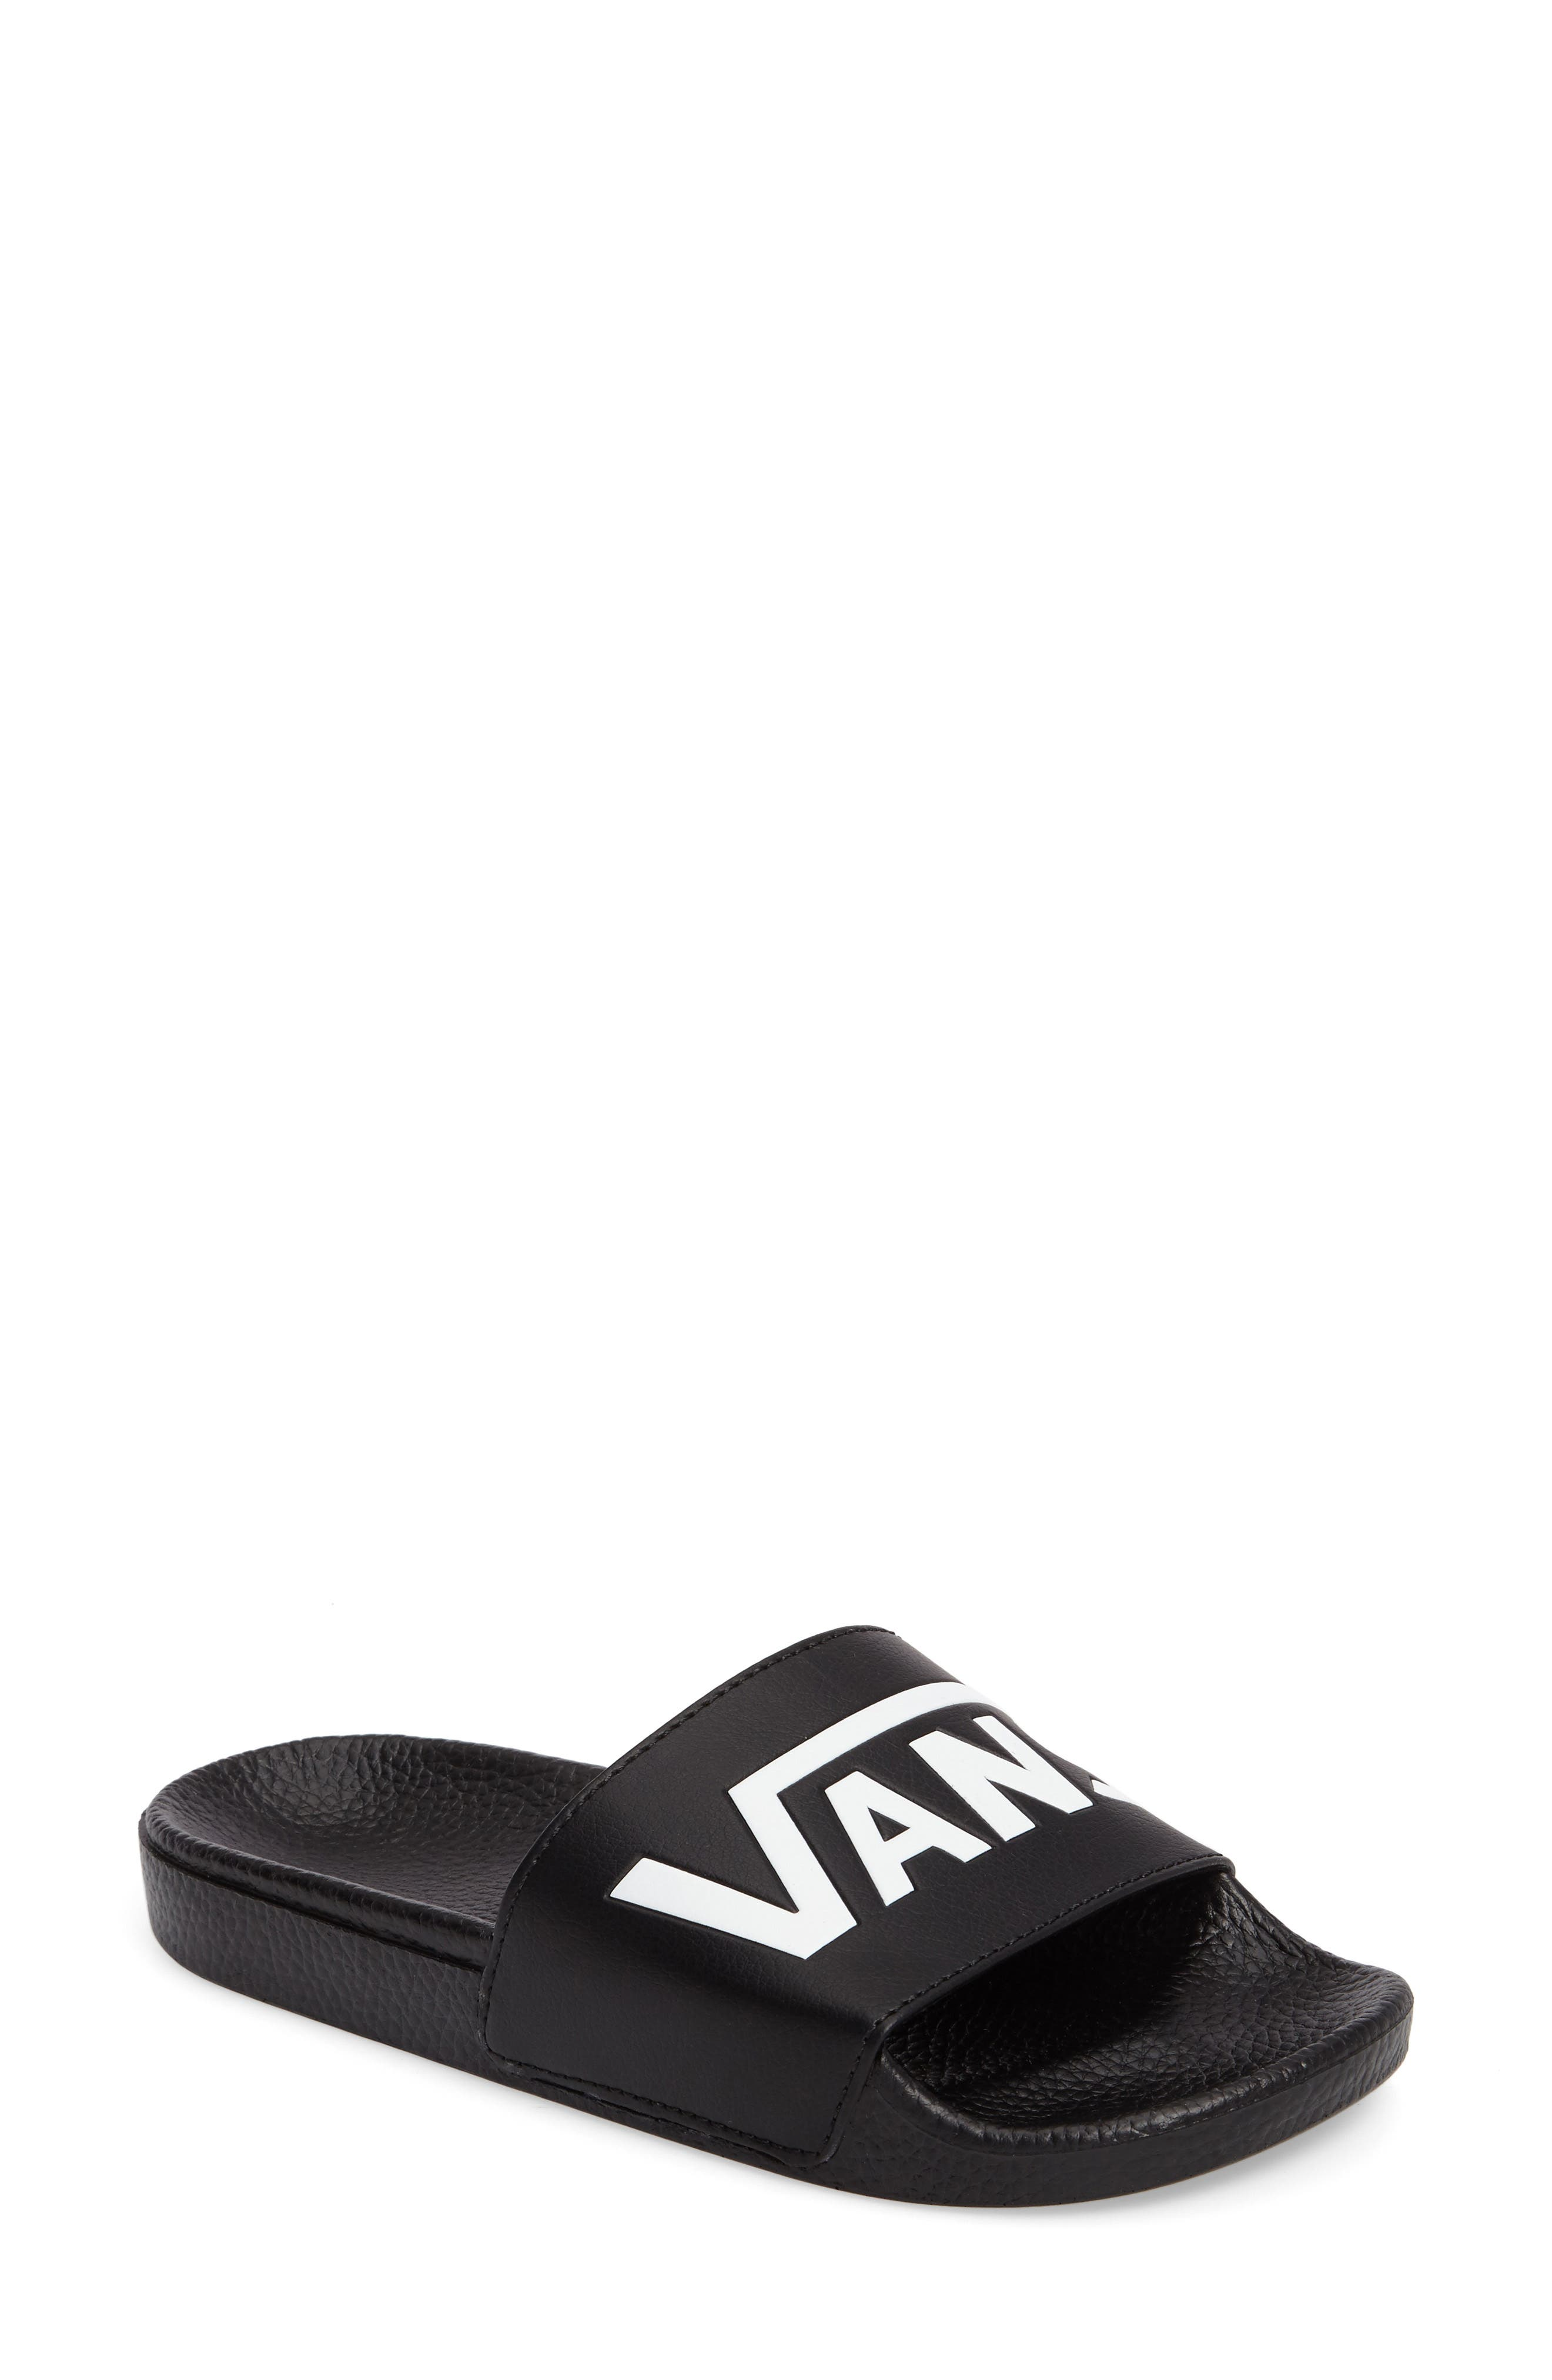 Vans Slide-On Sandal (Women)